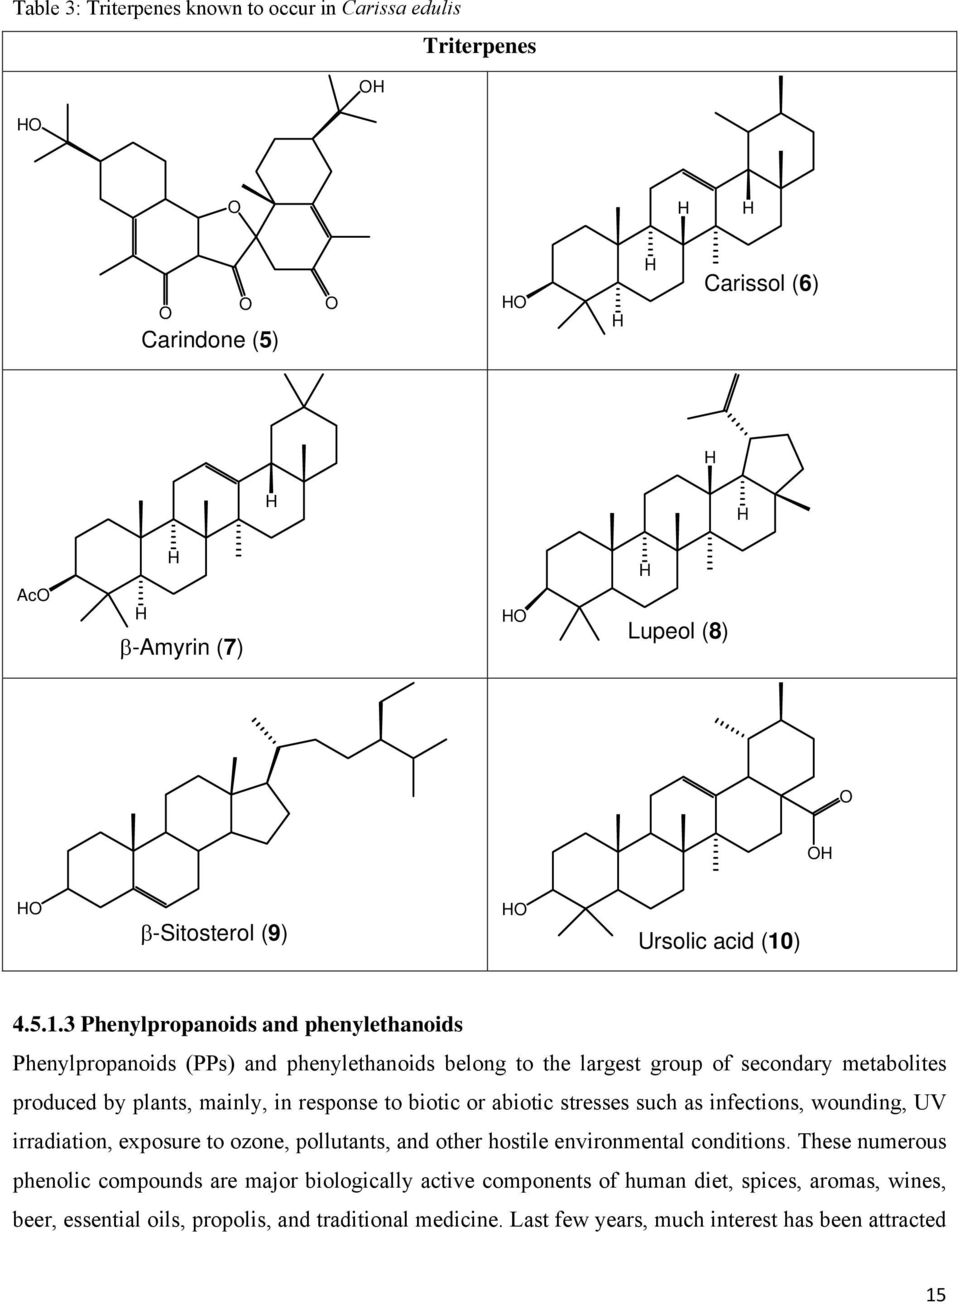 3 Phenylpropanoids and phenylethanoids Phenylpropanoids (PPs) and phenylethanoids belong to the largest group of secondary metabolites produced by plants, mainly, in response to